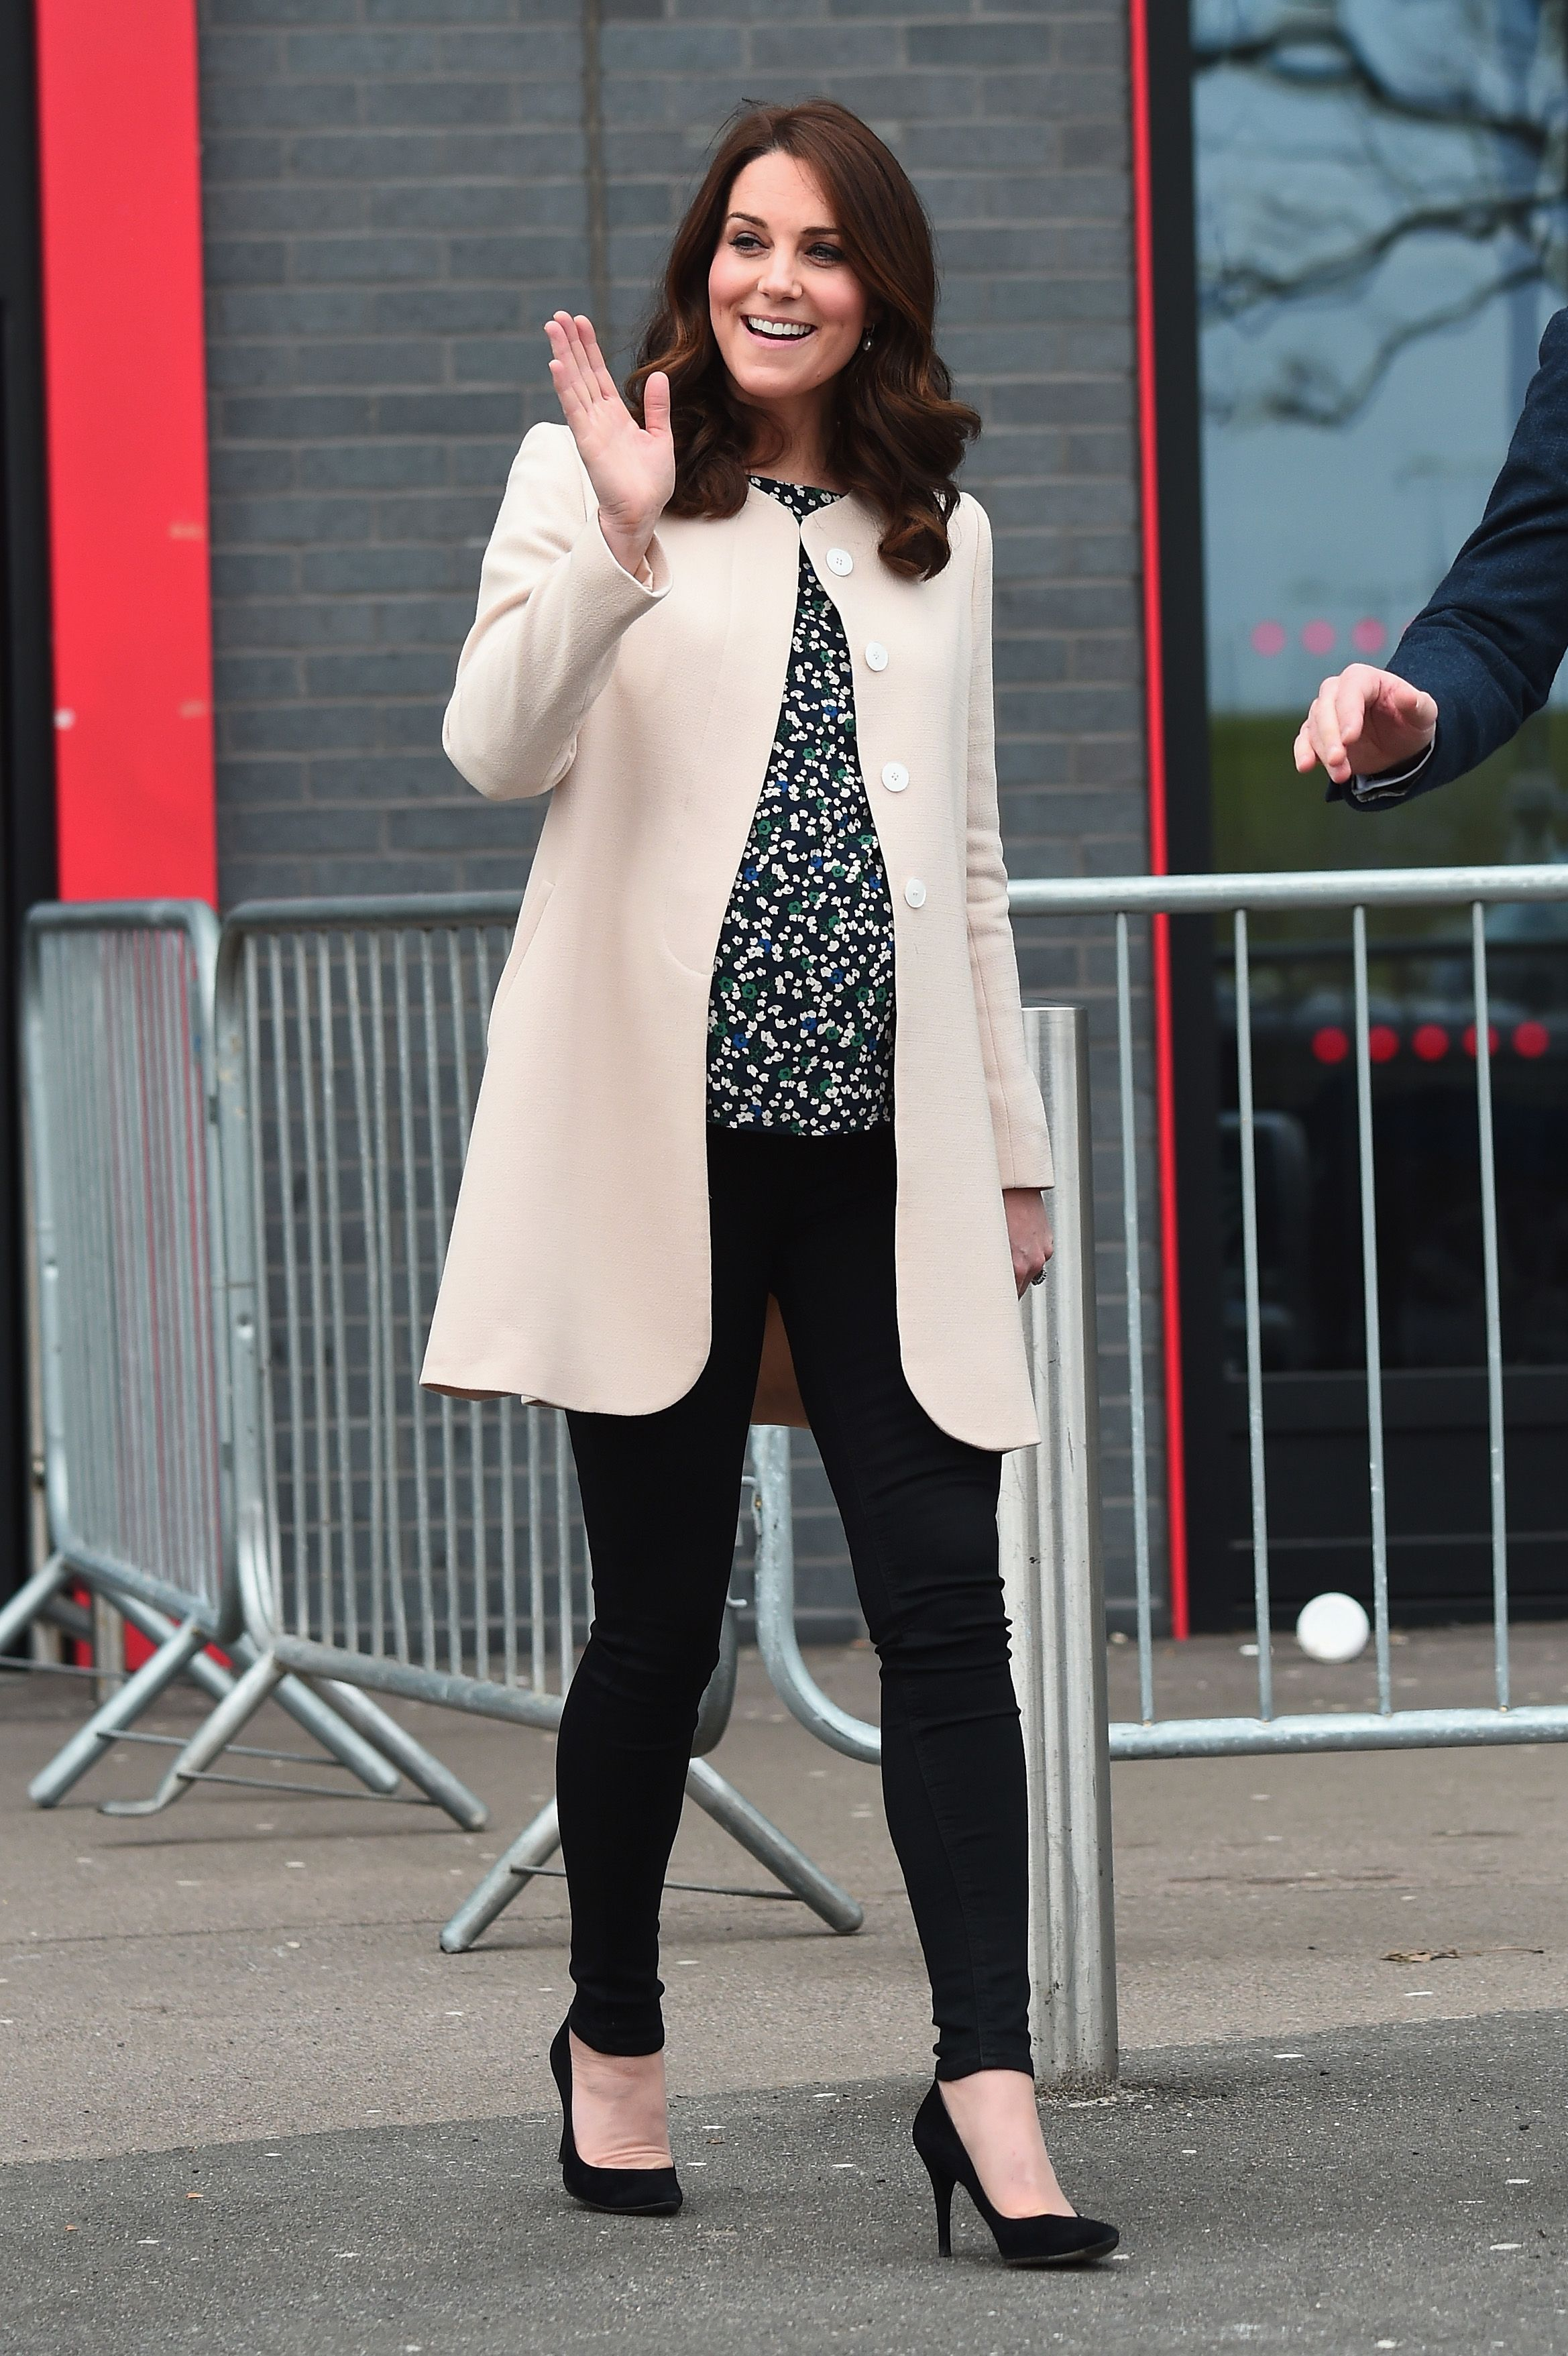 0f3335826ca7 Kate Middleton s Best Maternity Outfits - Kate s Chic Pregnant Style